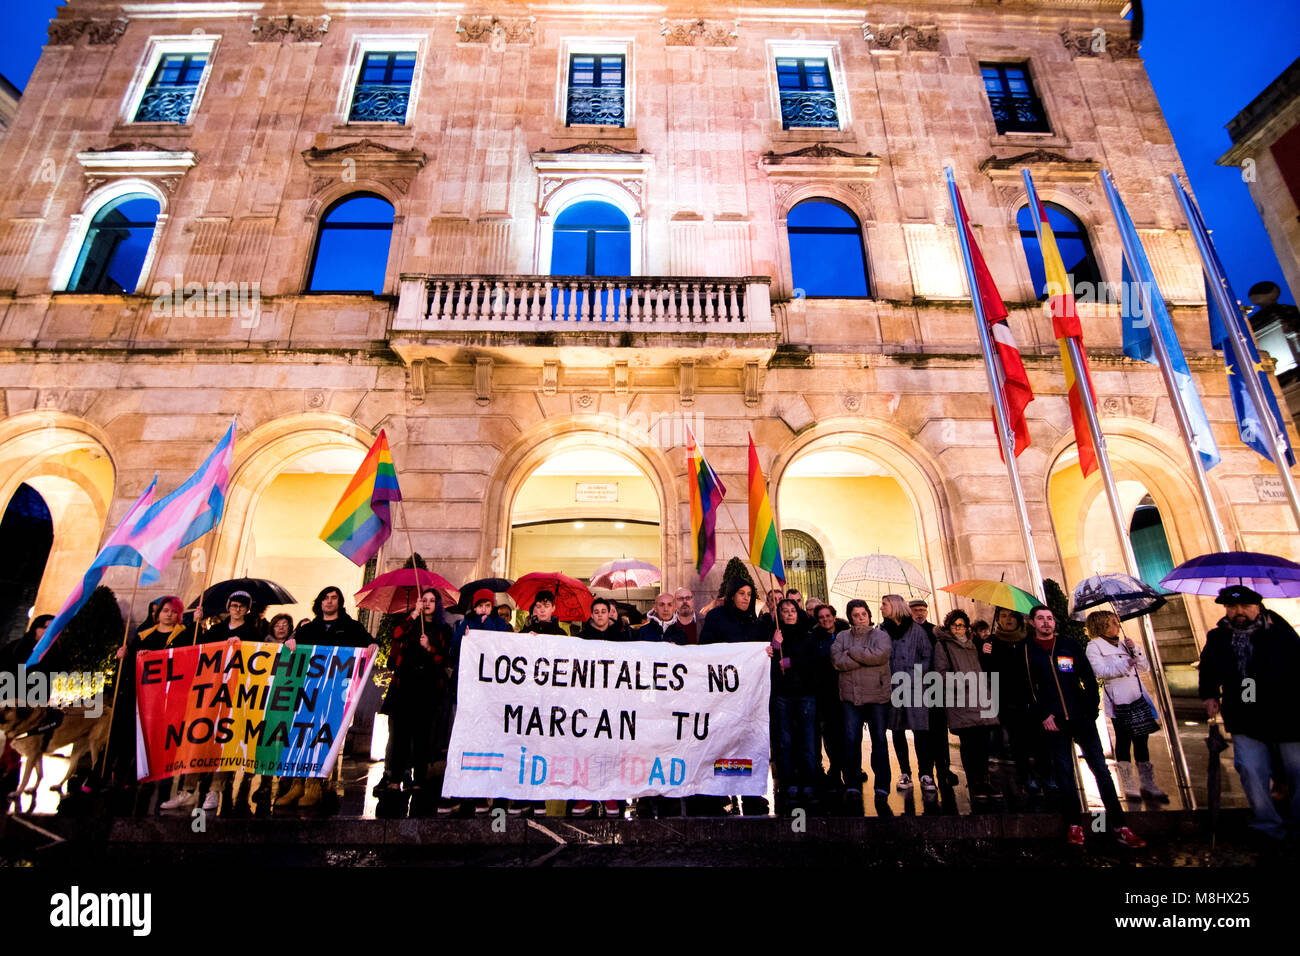 Gijon, Spain. 17th March, 2018.  People are manifested for raising awareness of discrimination faced by transgender - Stock Image